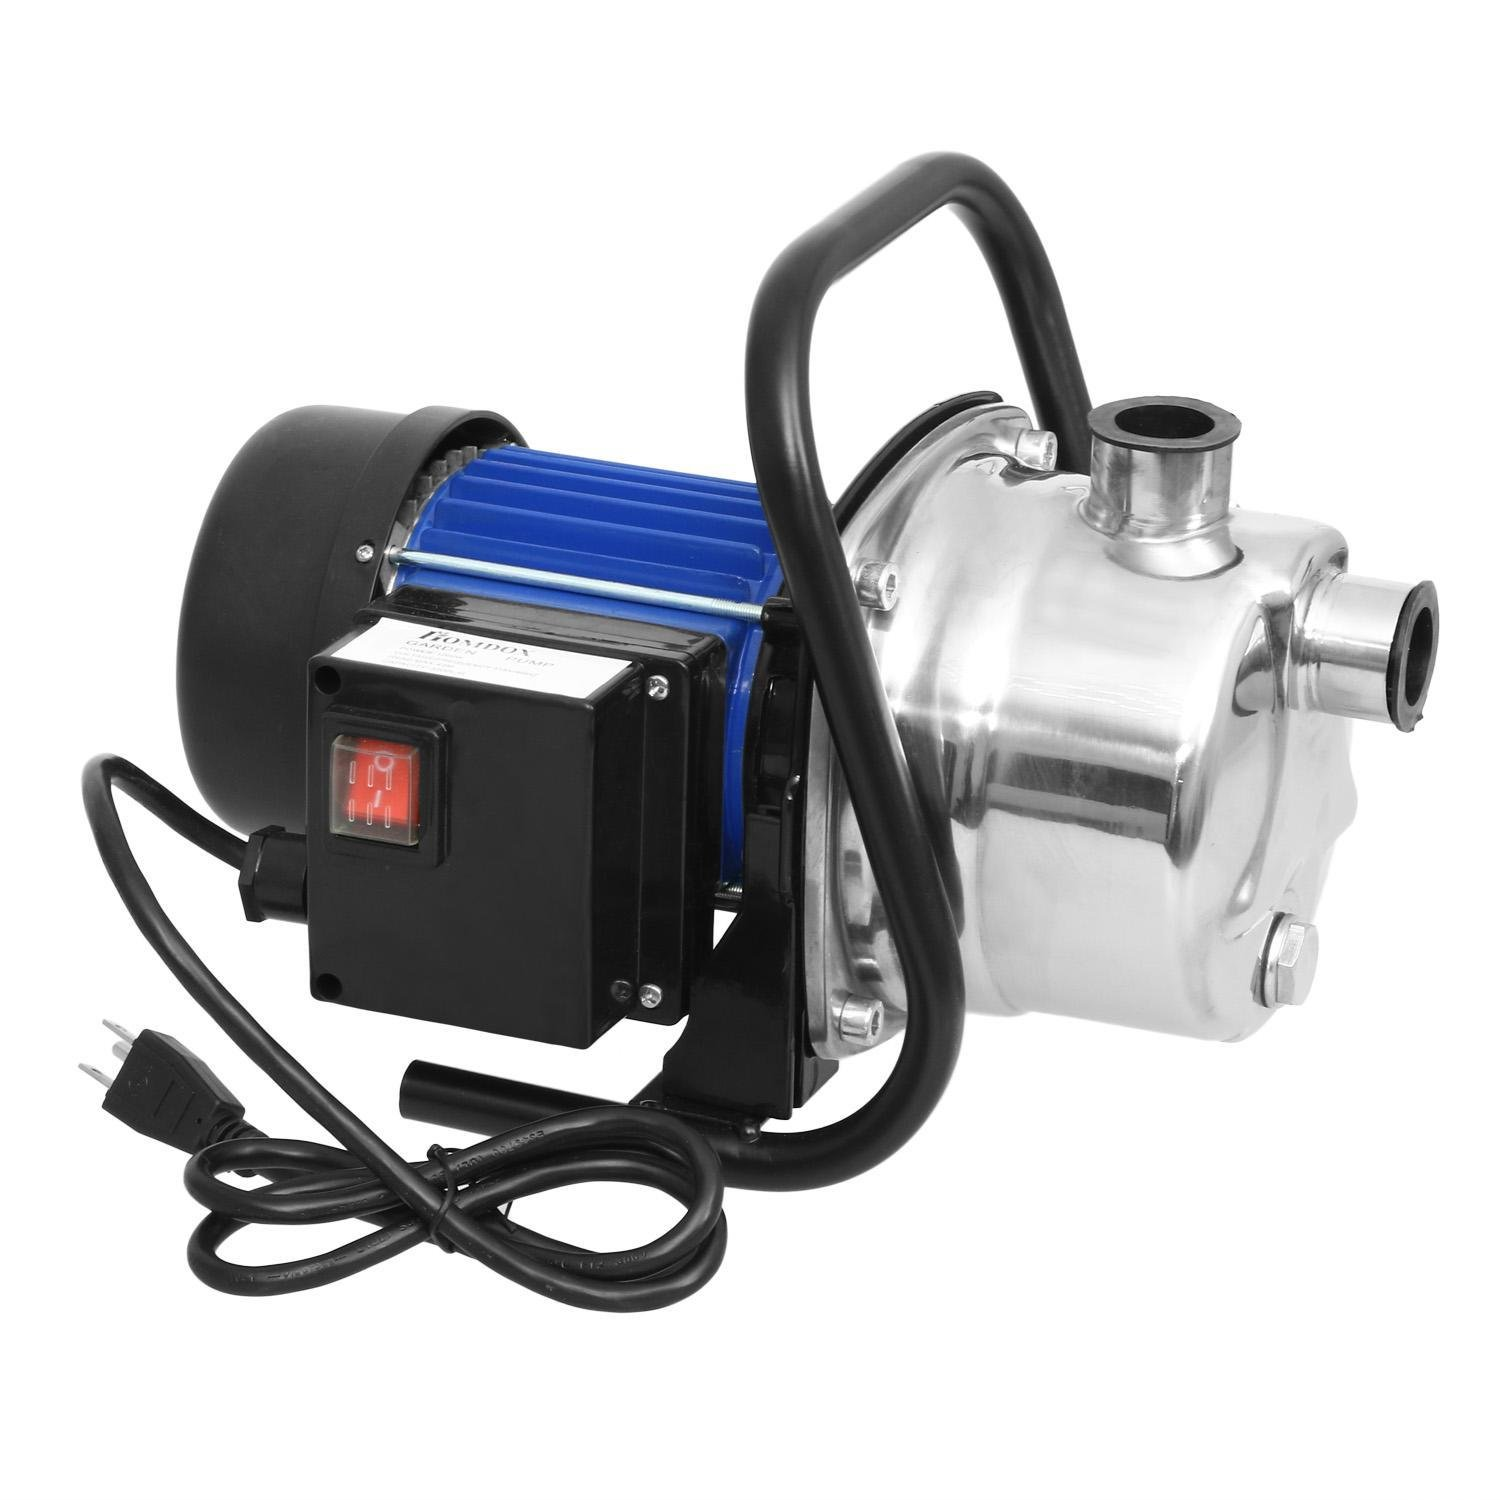 Dtemple 1.6HP 1200W 115V Shallow Garden Water Pump Sprinkling Booster Pump for Home Garden Lawn